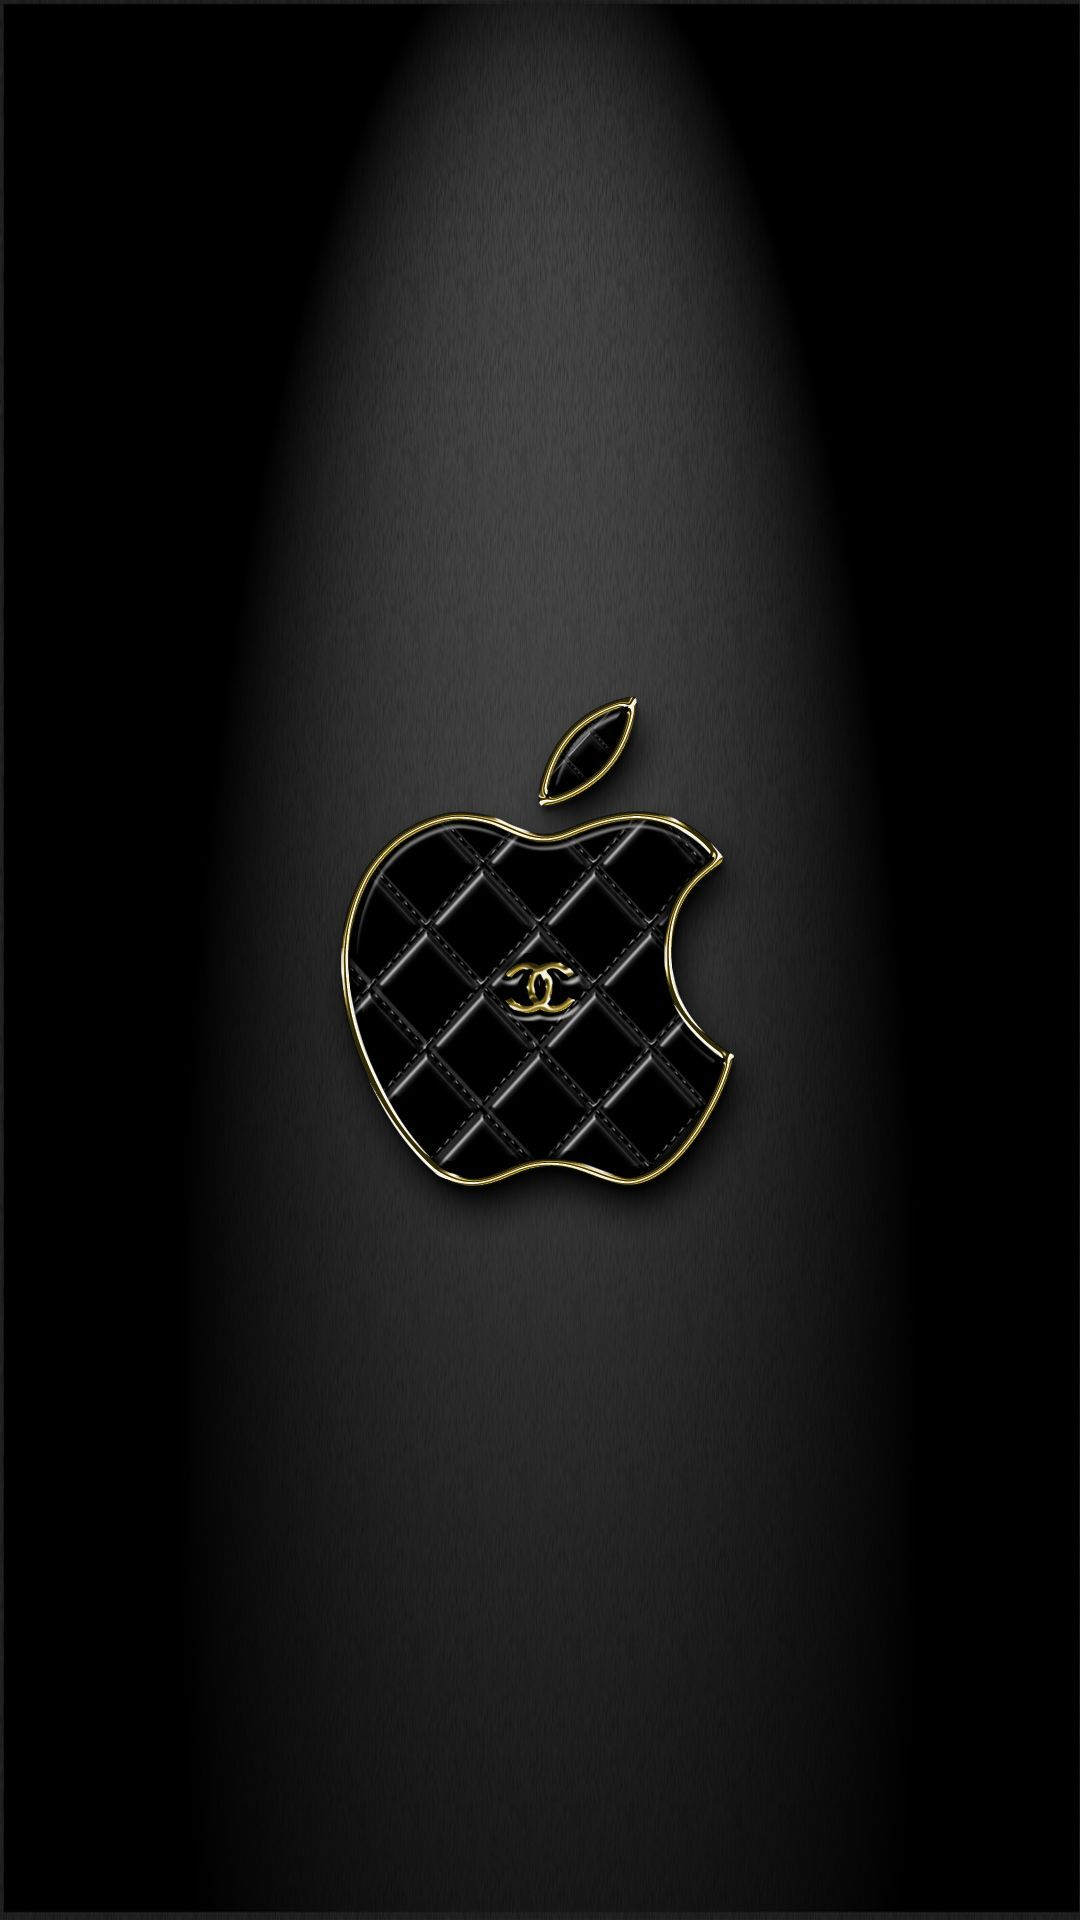 List Of Latest Black Wallpaper For Iphone X Today Apple Wallpaper Apple Wallpaper Iphone Black Wallpaper Iphone